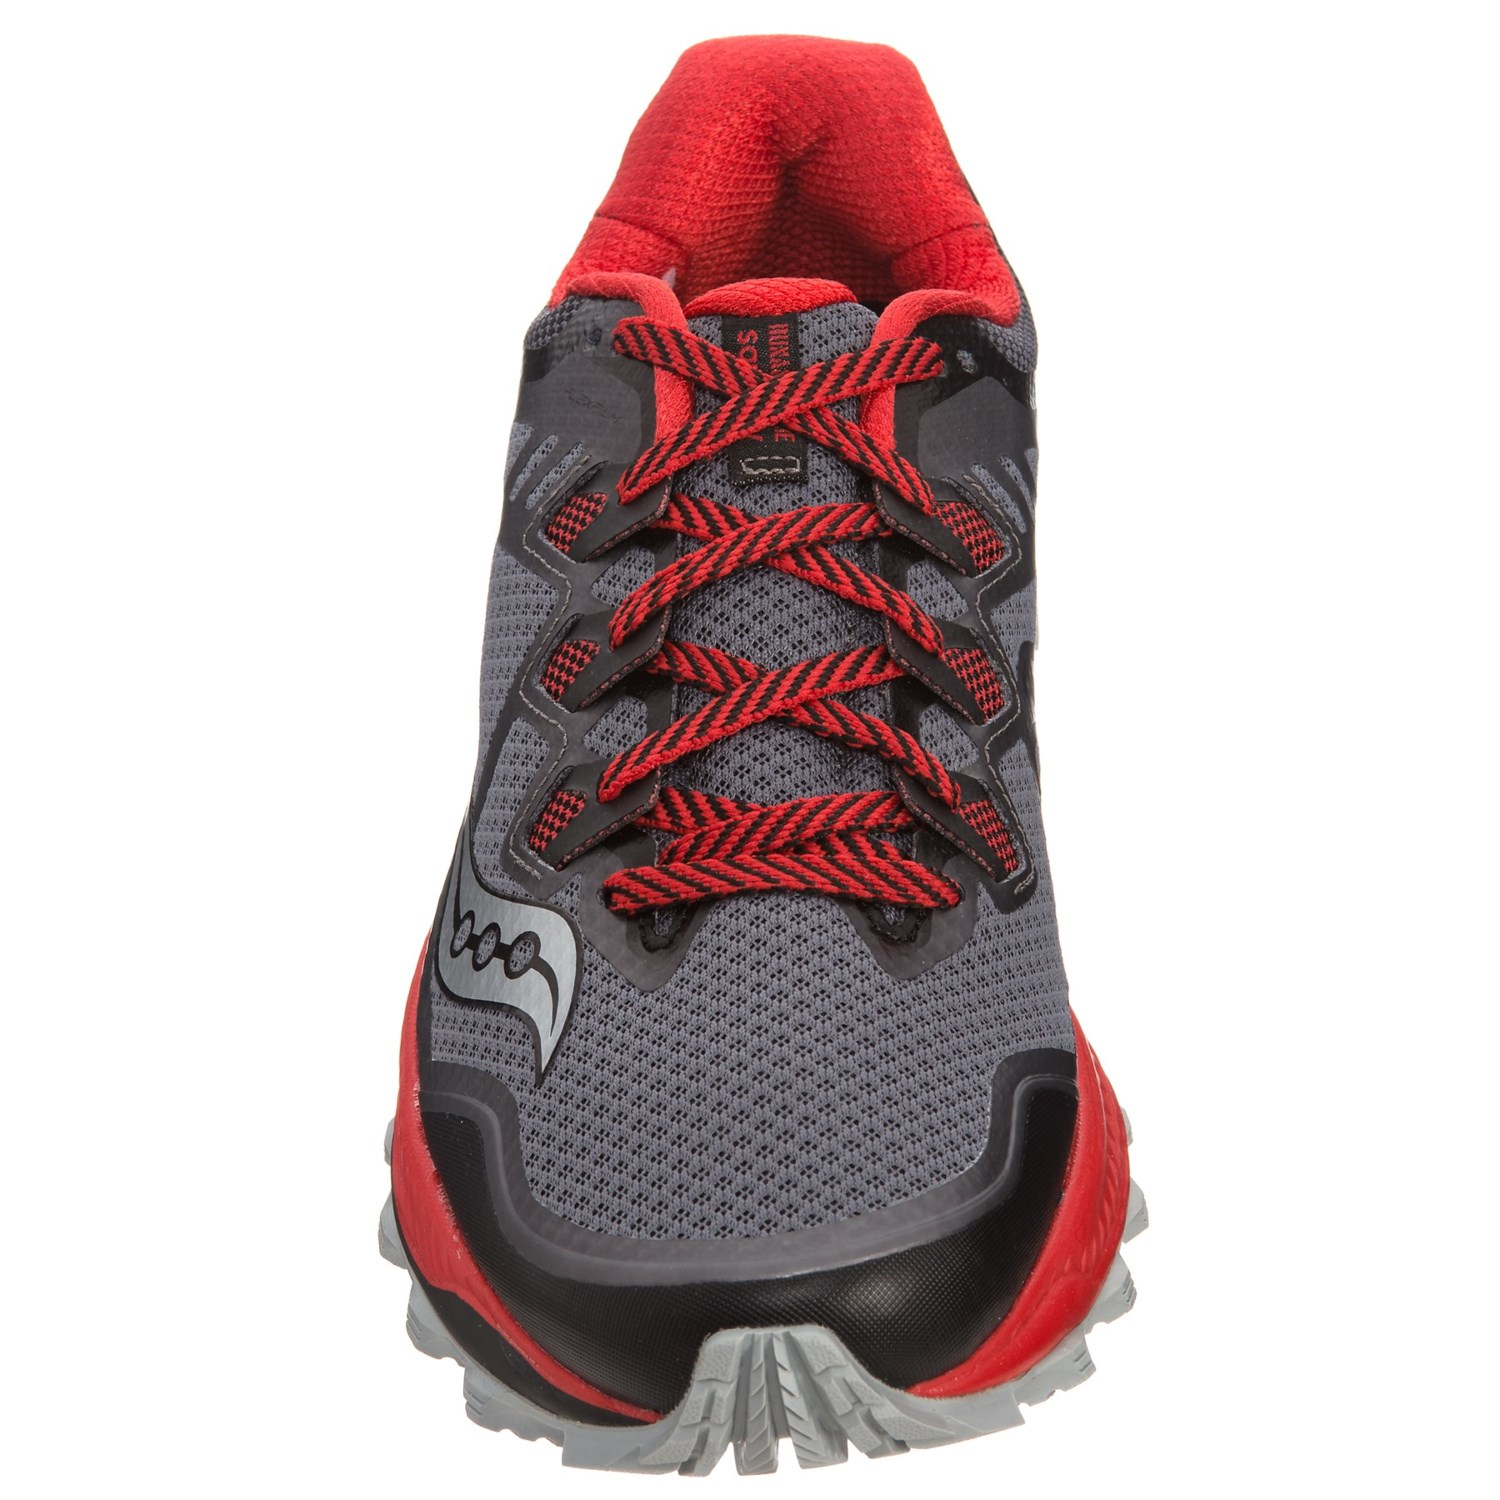 277d9bcb12a Saucony Peregrine 8 Trail Running Shoes (For Men) - Save 41%